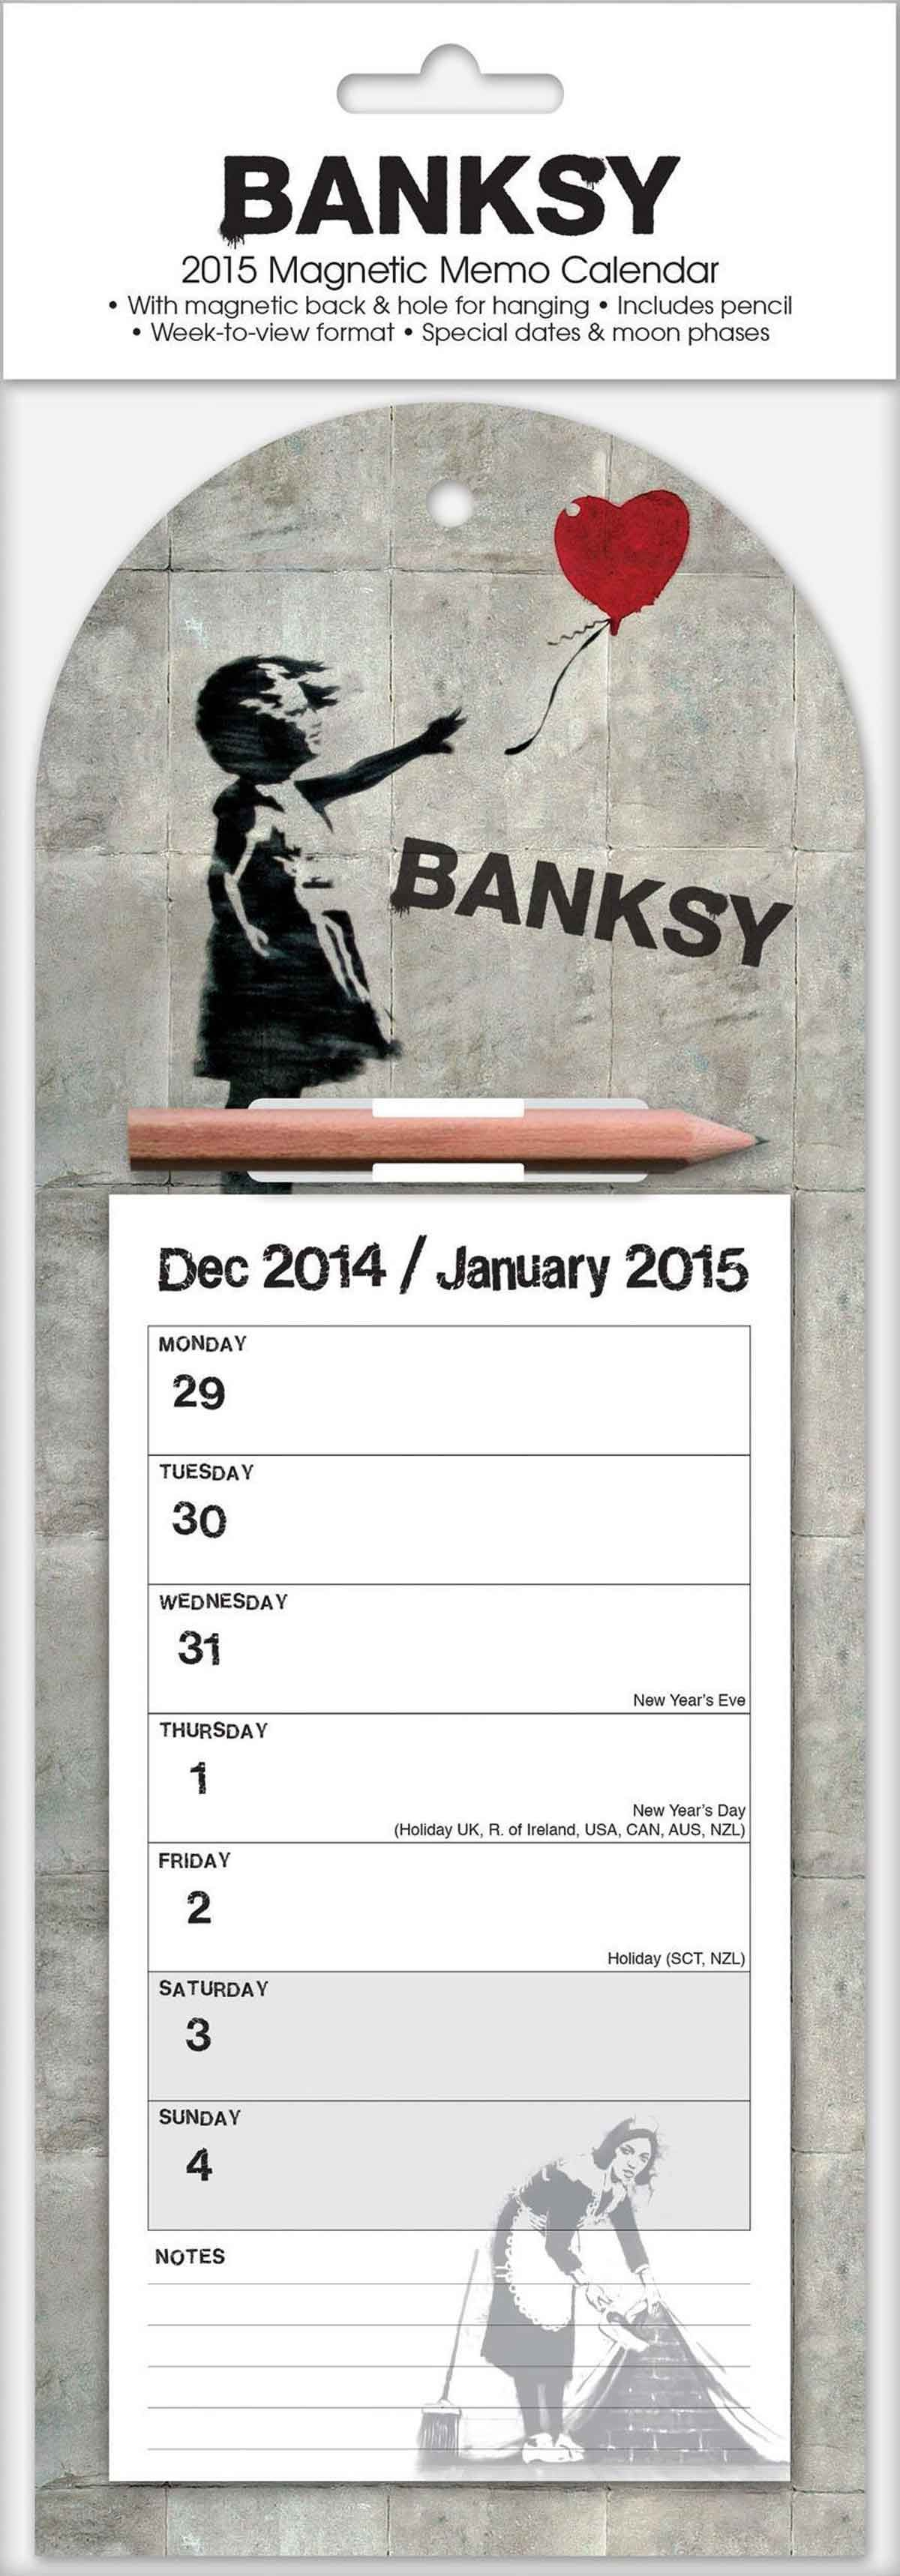 banksy magnetic calendar 2016 calendars pinterest magnetic